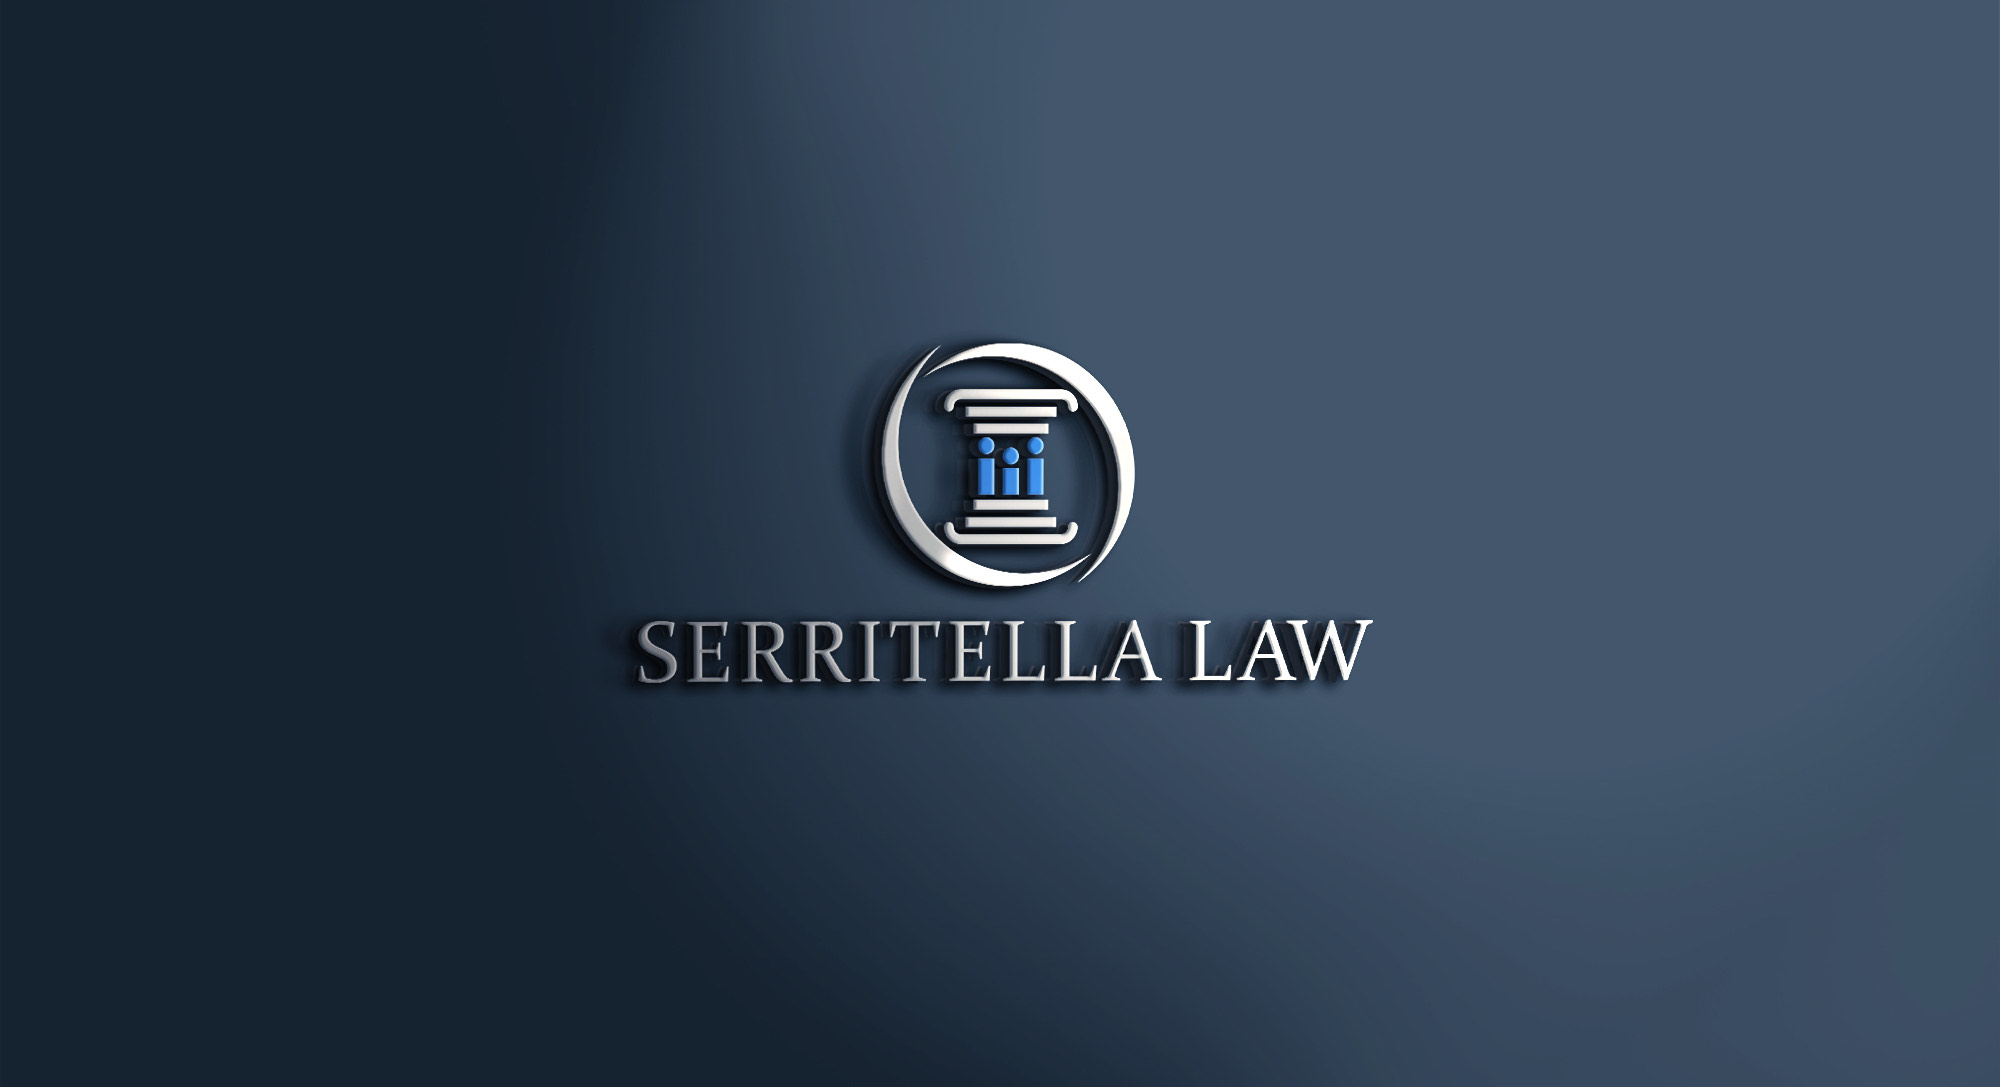 Serritella Law Legal Services